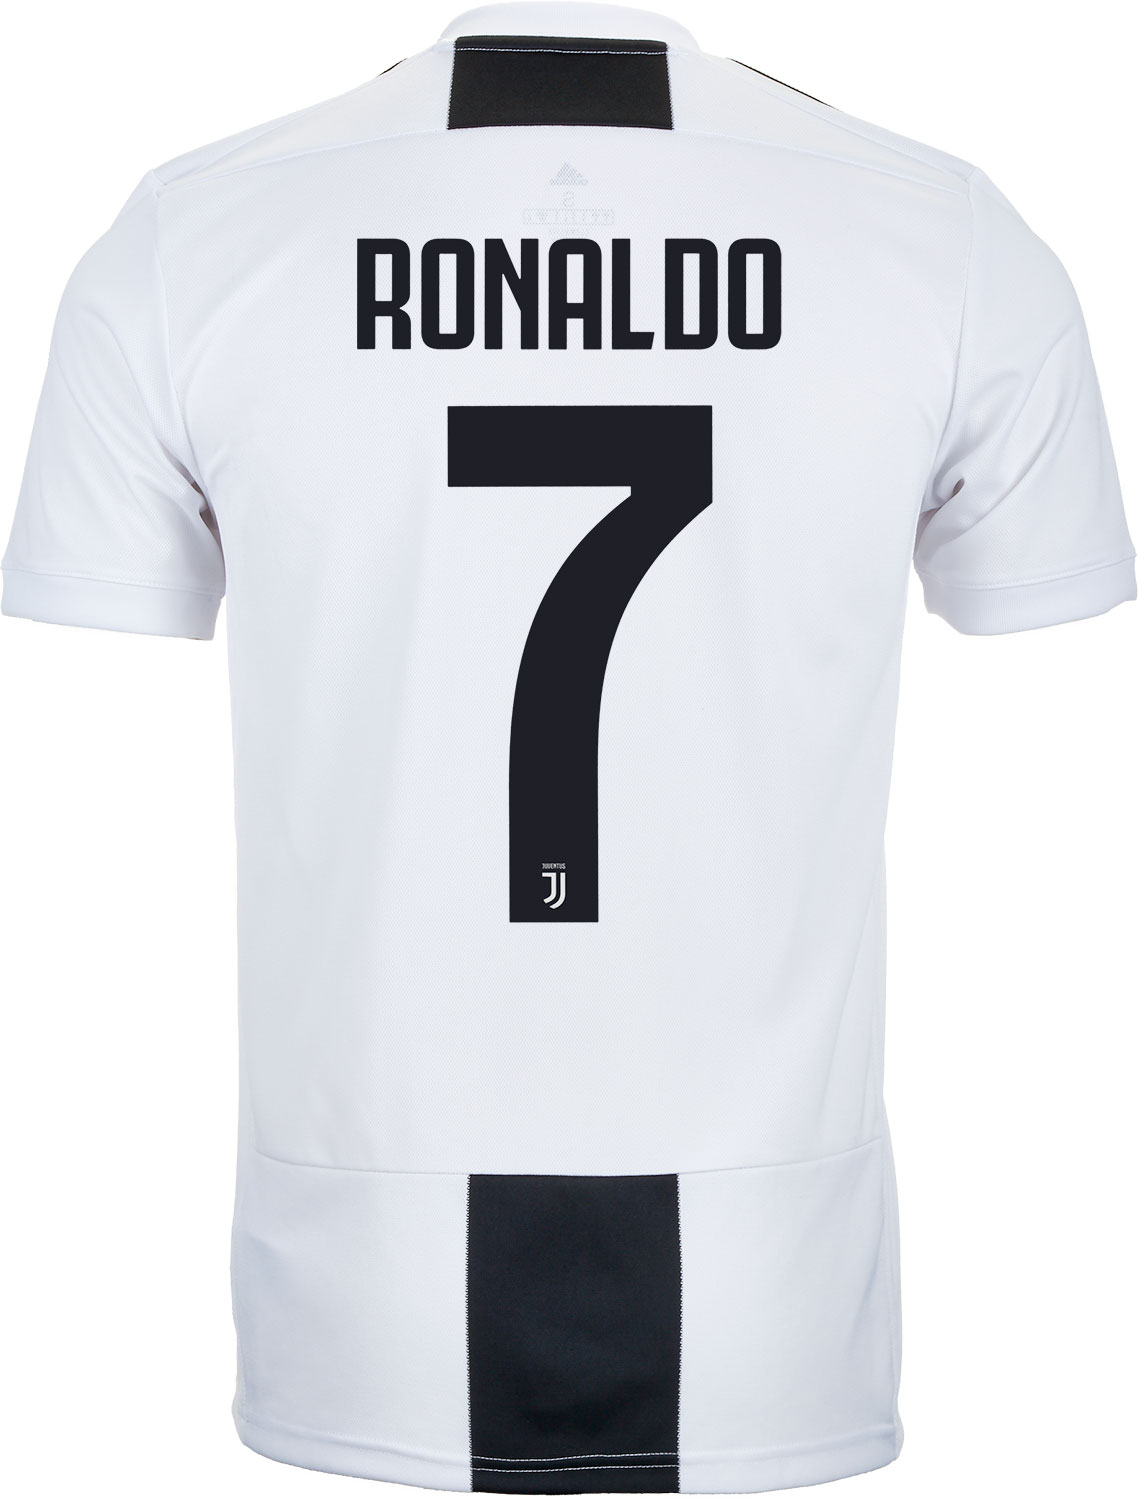 factory price 123c5 49a98 adidas Cristiano Ronaldo Juventus Home Jersey - Youth 2018 ...